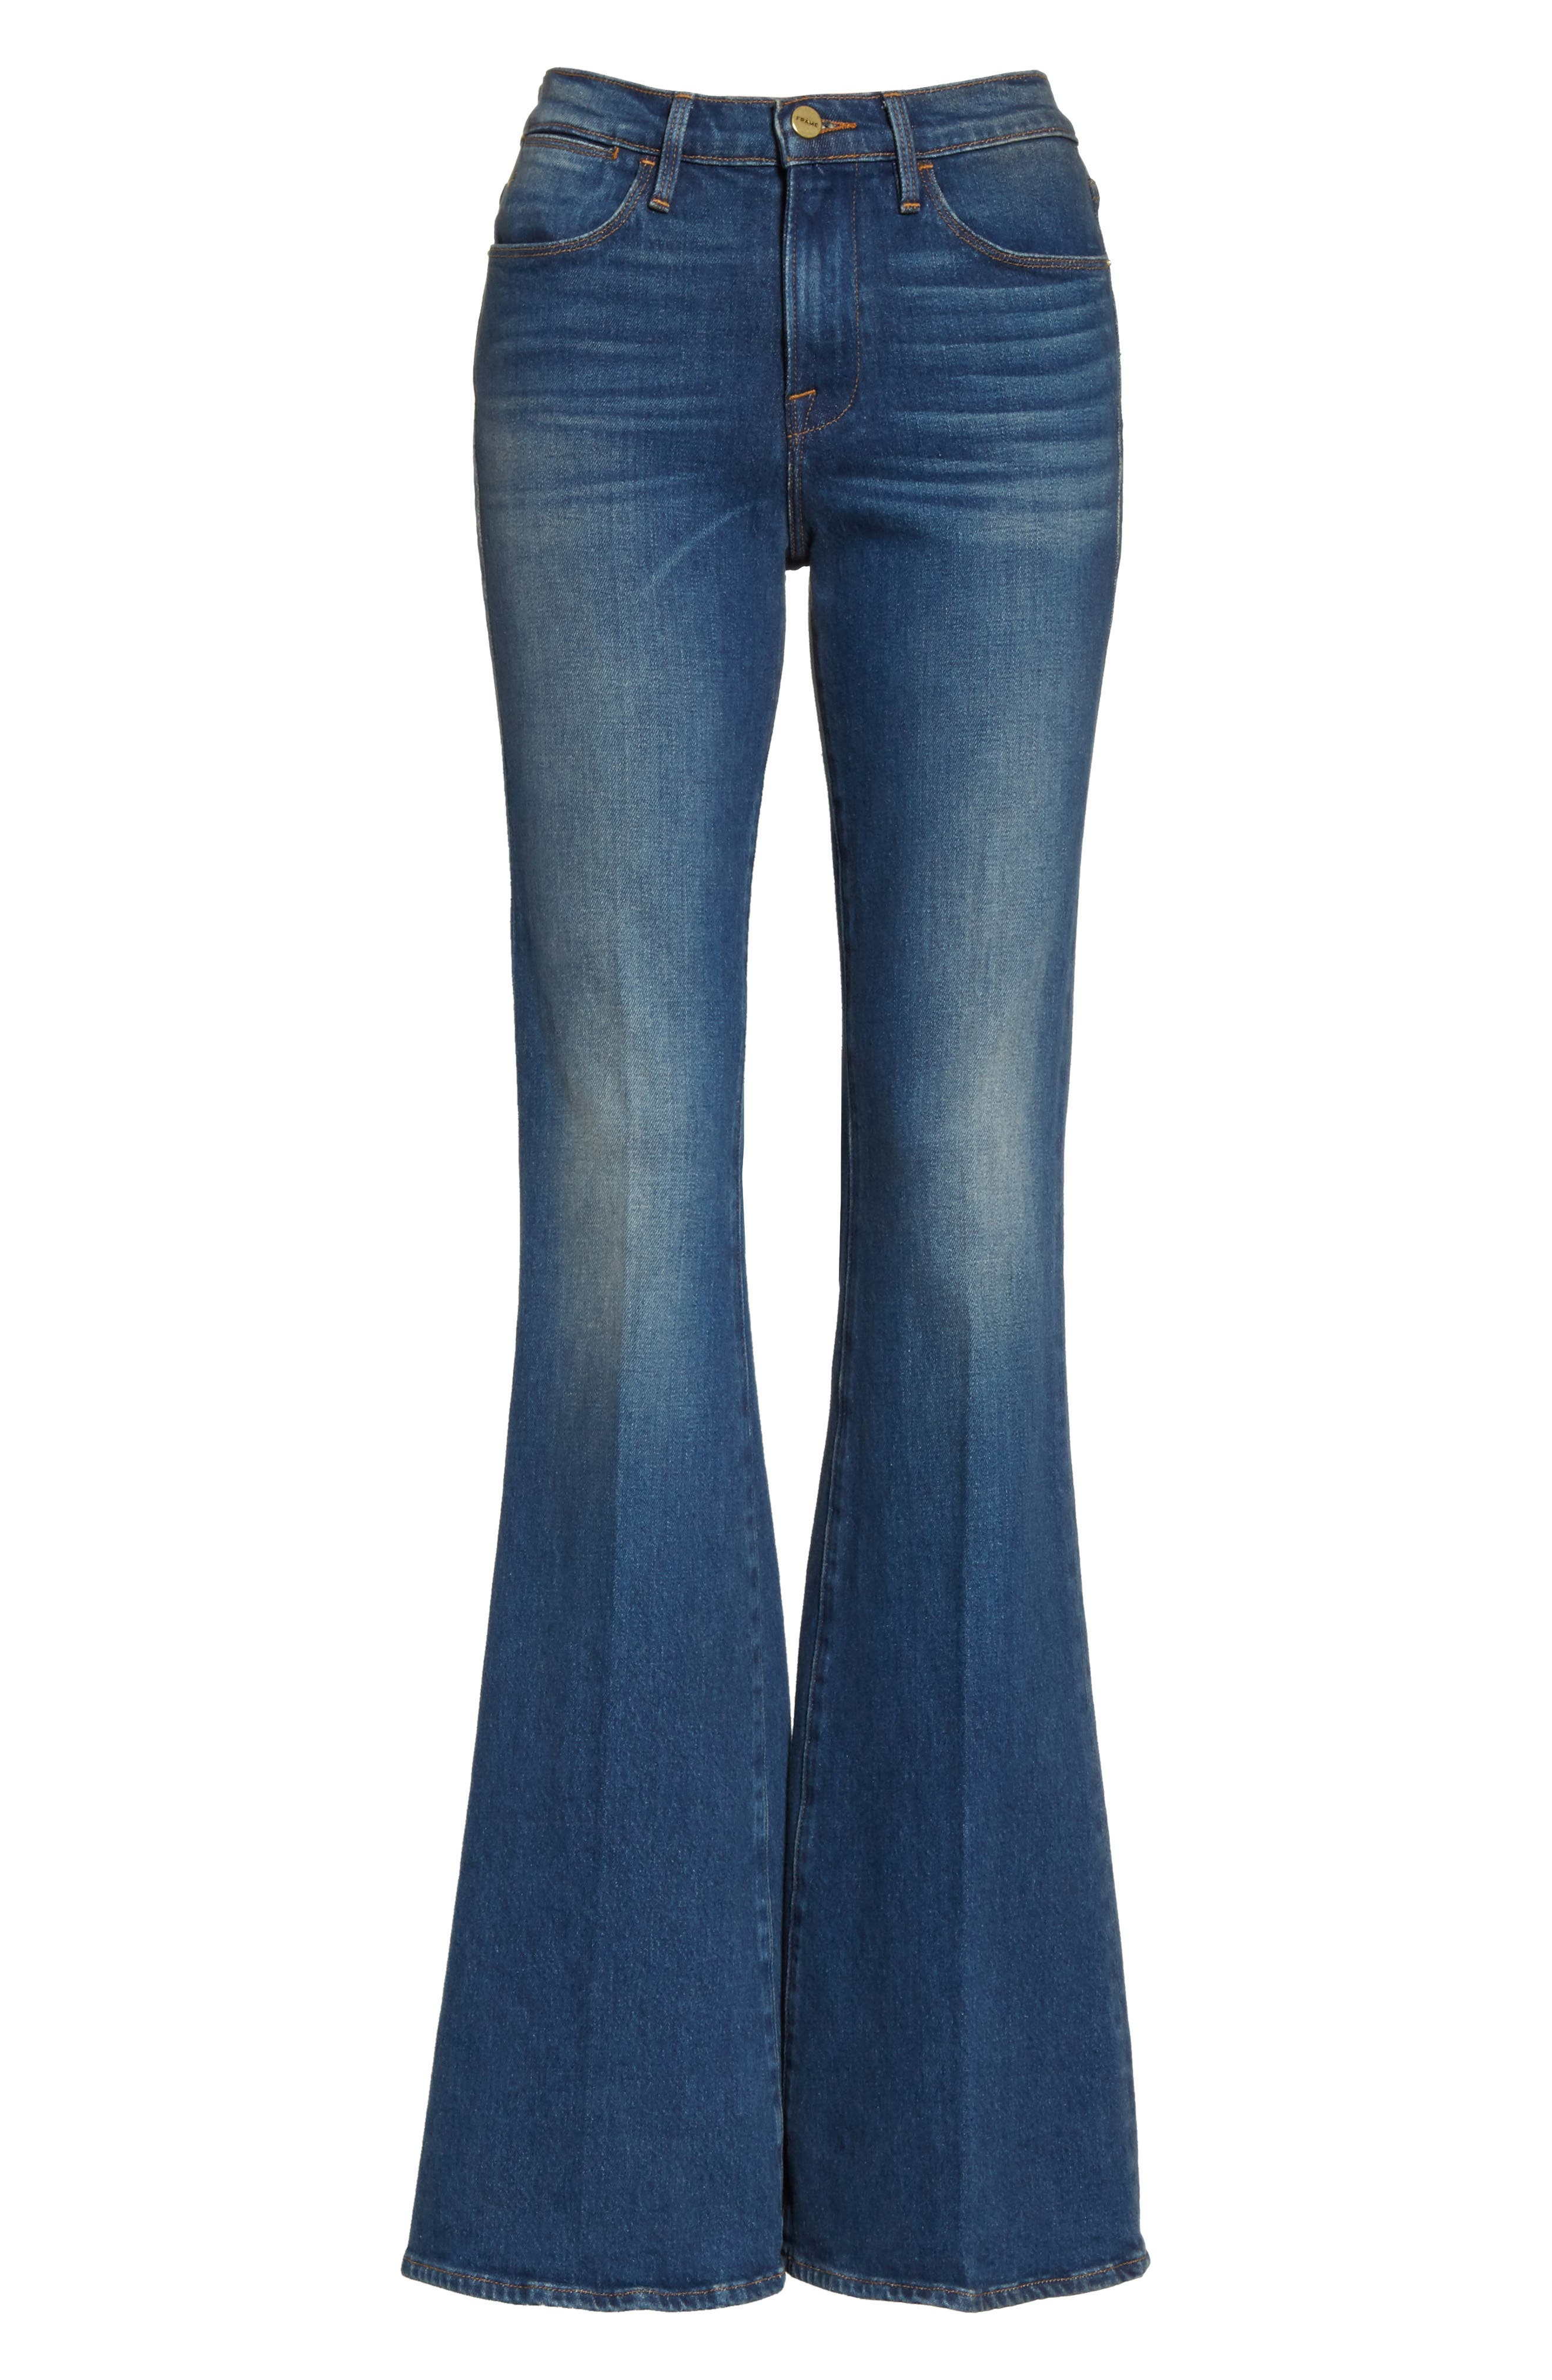 Le High Flare Jeans,                             Alternate thumbnail 7, color,                             401